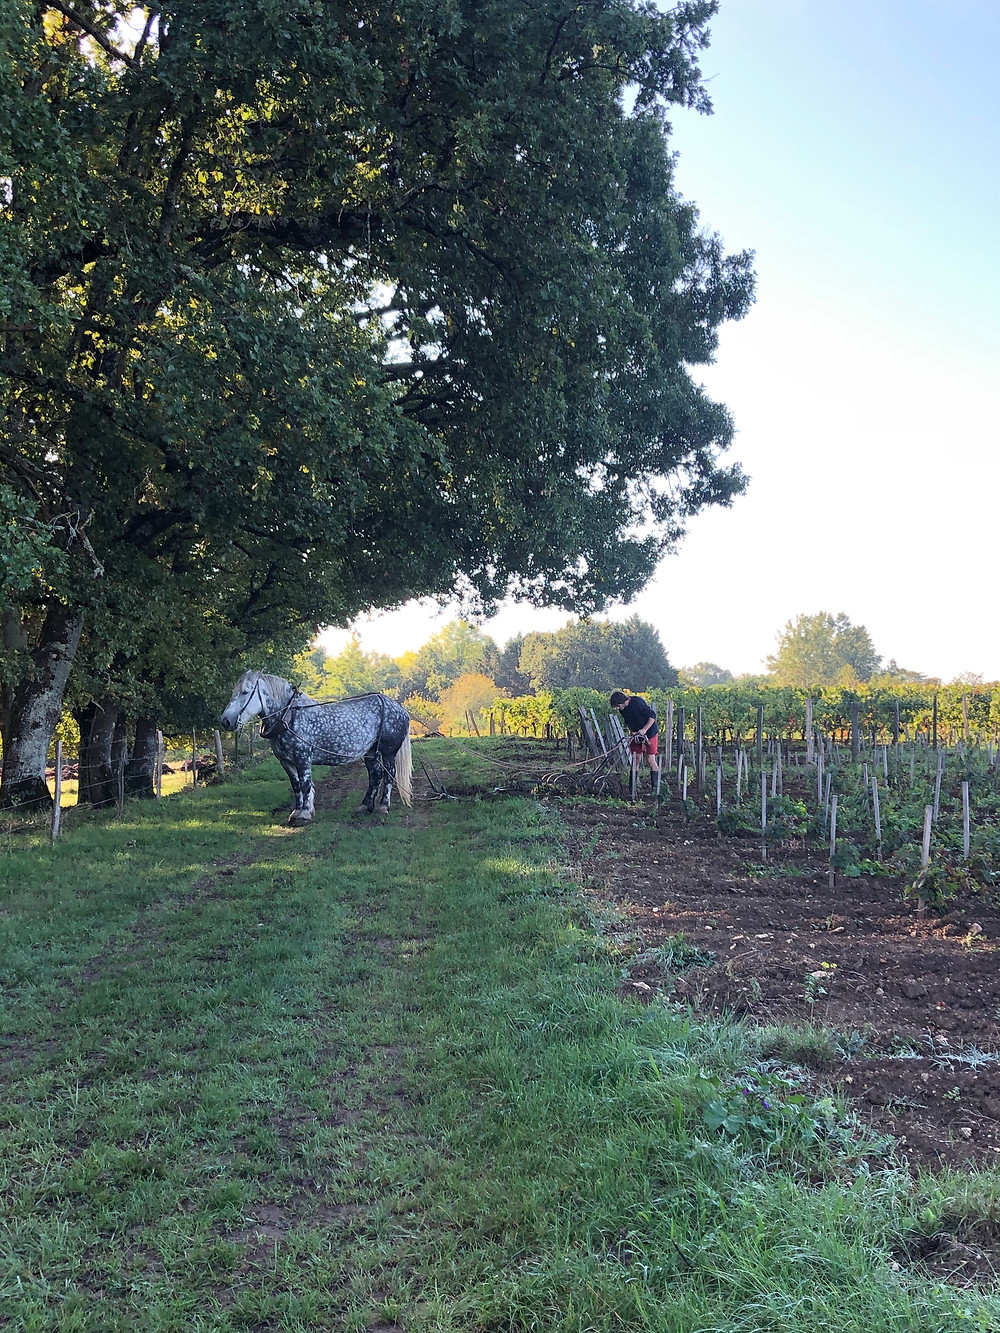 Horses on the vineyard at biodynamic Bordeaux winery Chateau Le Puy during a wine study trip to Cotes de Francs